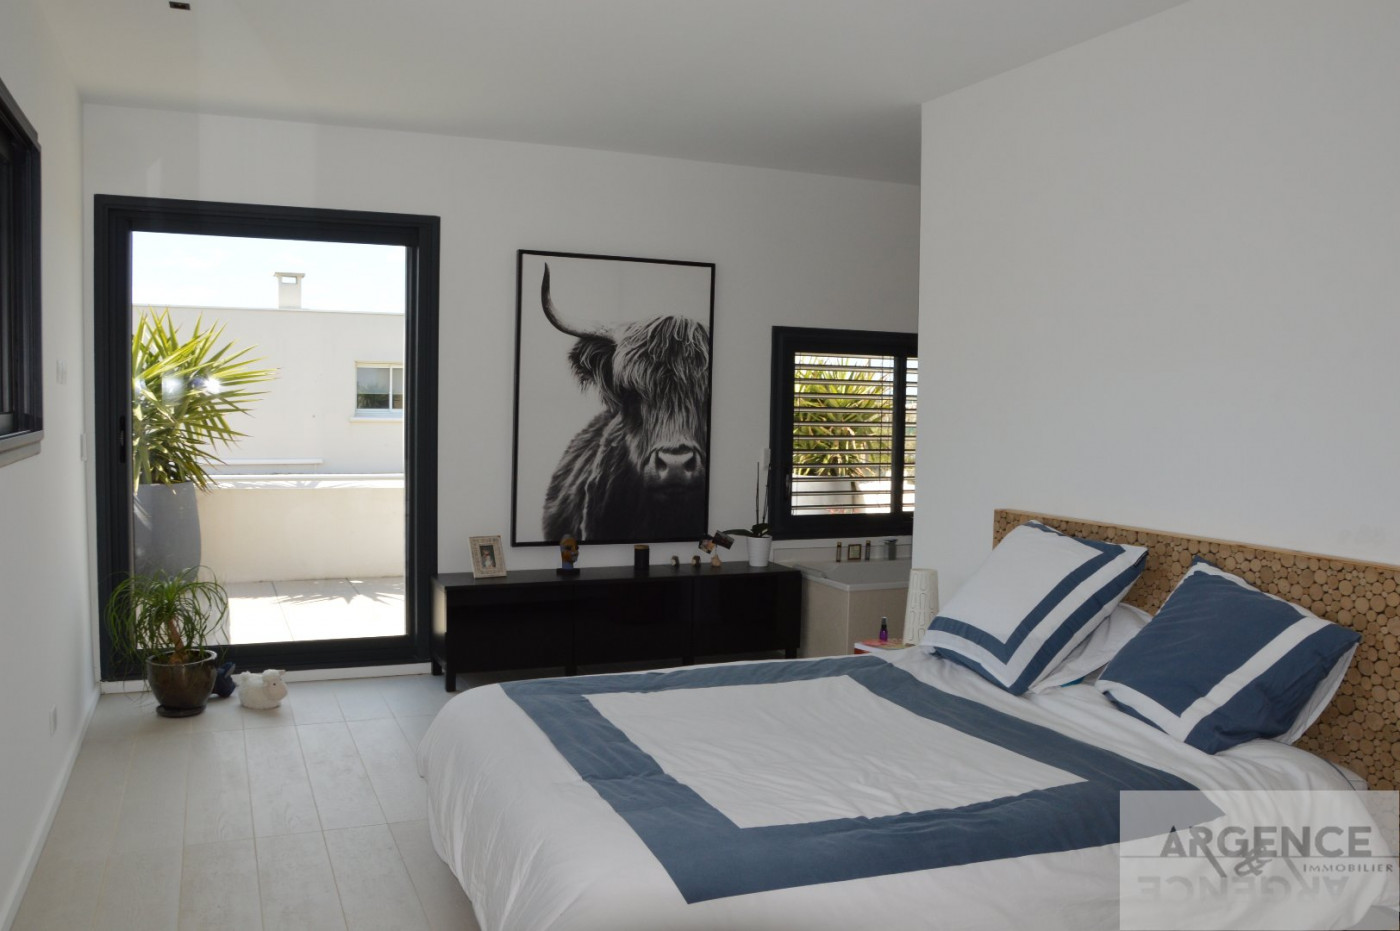 A vendre Montpellier 345335445 Argence immobilier